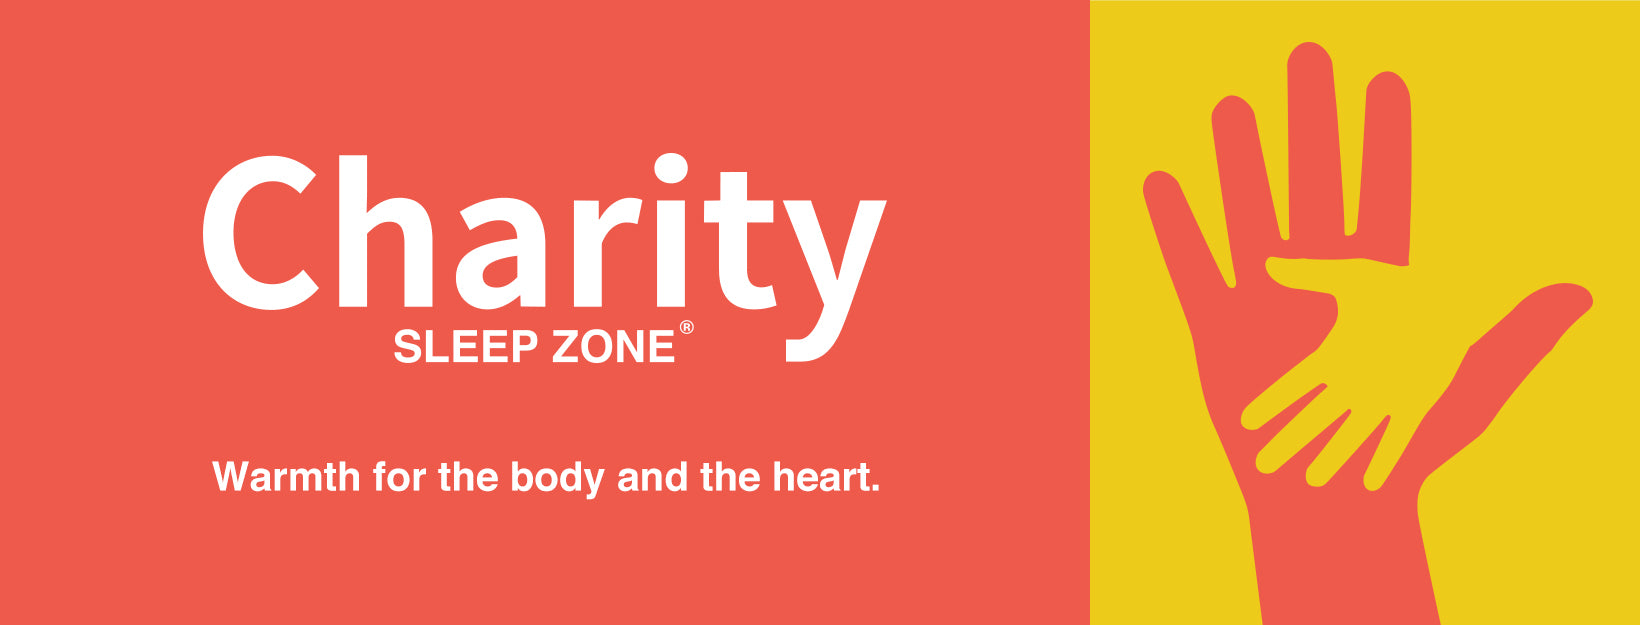 Sleep Zone® Charity